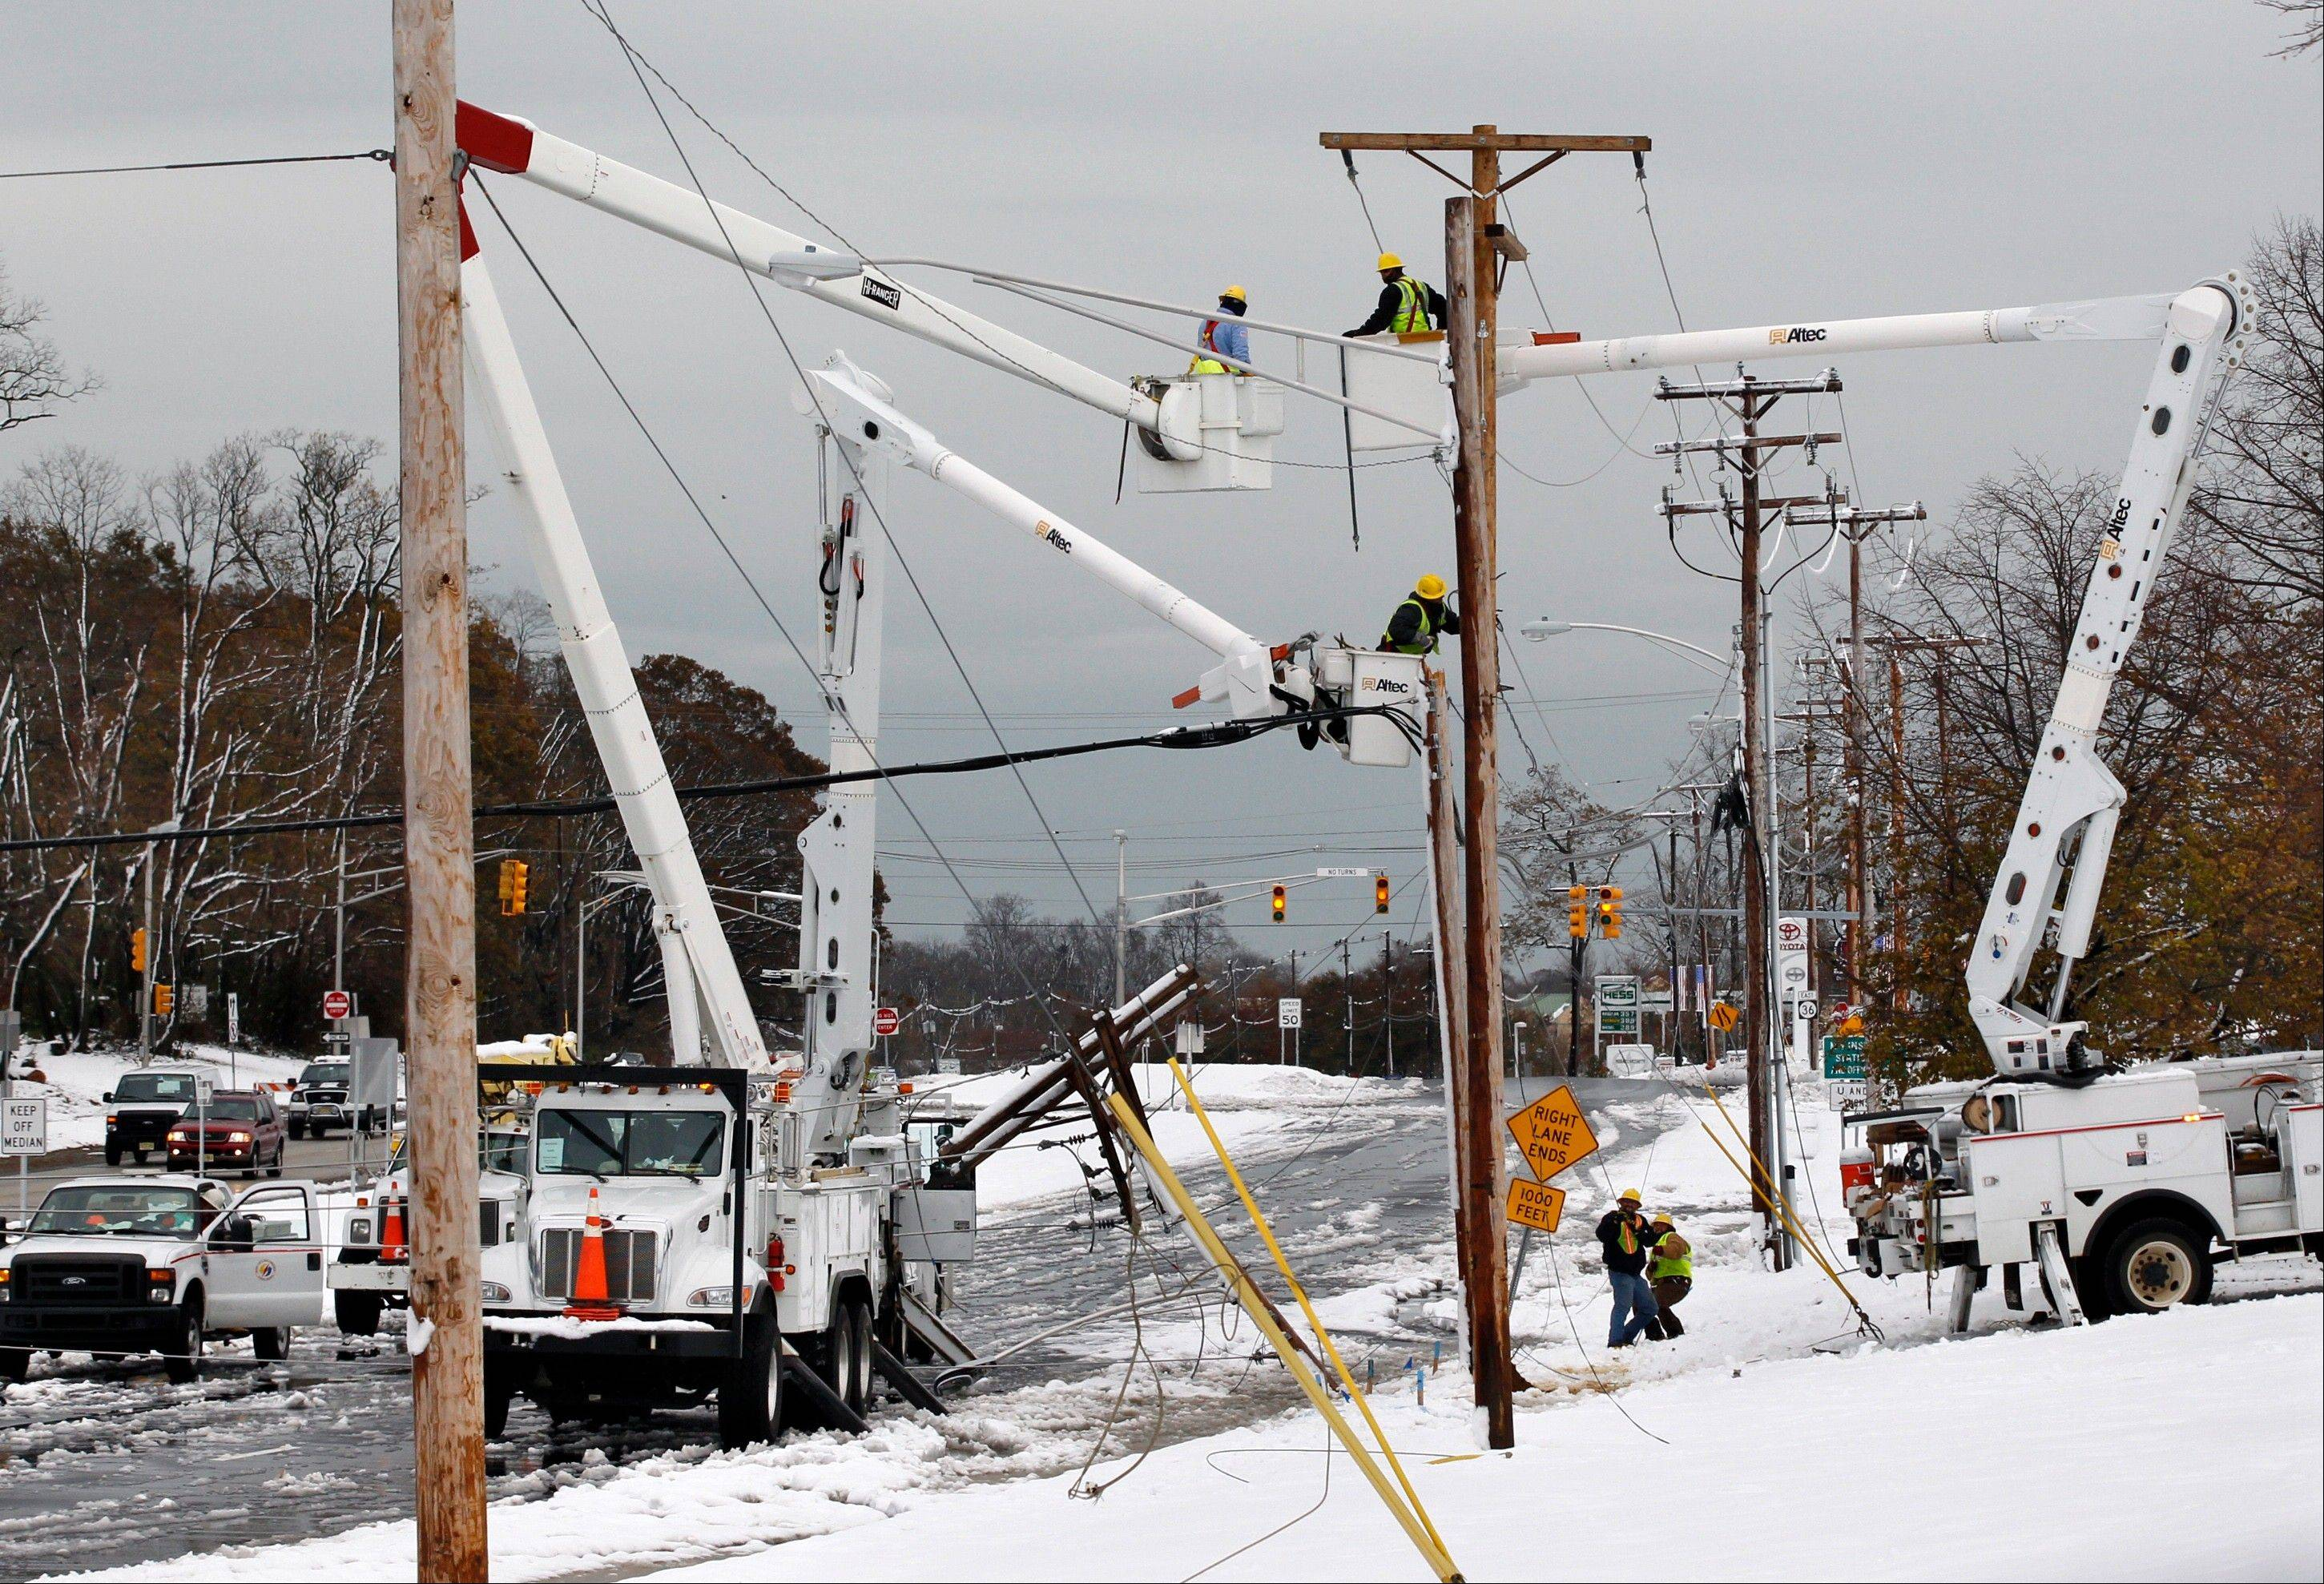 Crews work to repair downed wires Thursday in Eatontown, N.J., after a nor'easter brought high winds and dumped as much as a foot of snow overnight in the region pounded by Superstorm Sandy last week.